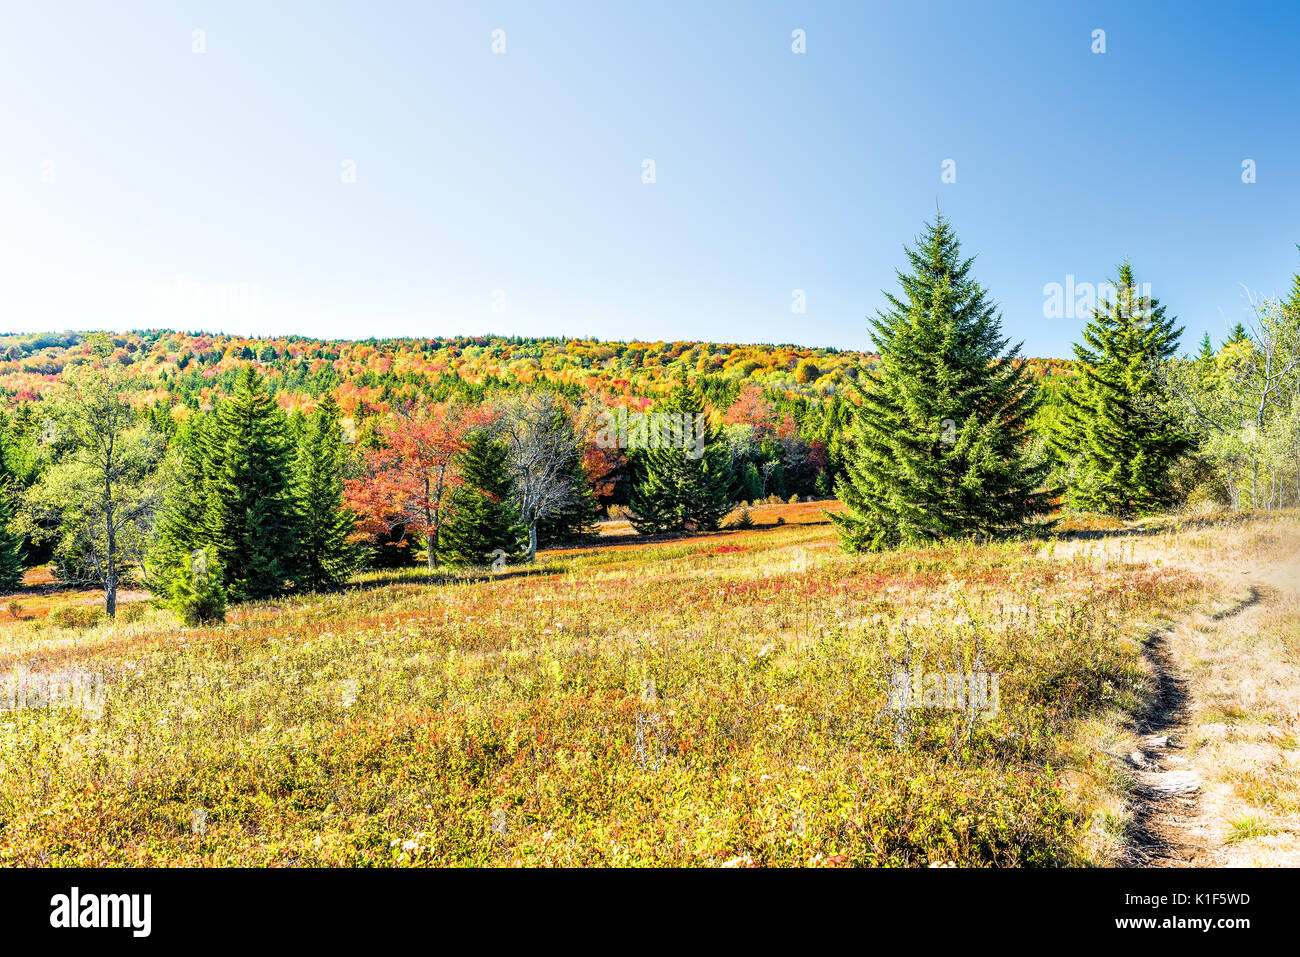 Rocky landscape meadow hill in Dolly Sods, West Virginia in autumn with trail path - Stock Image